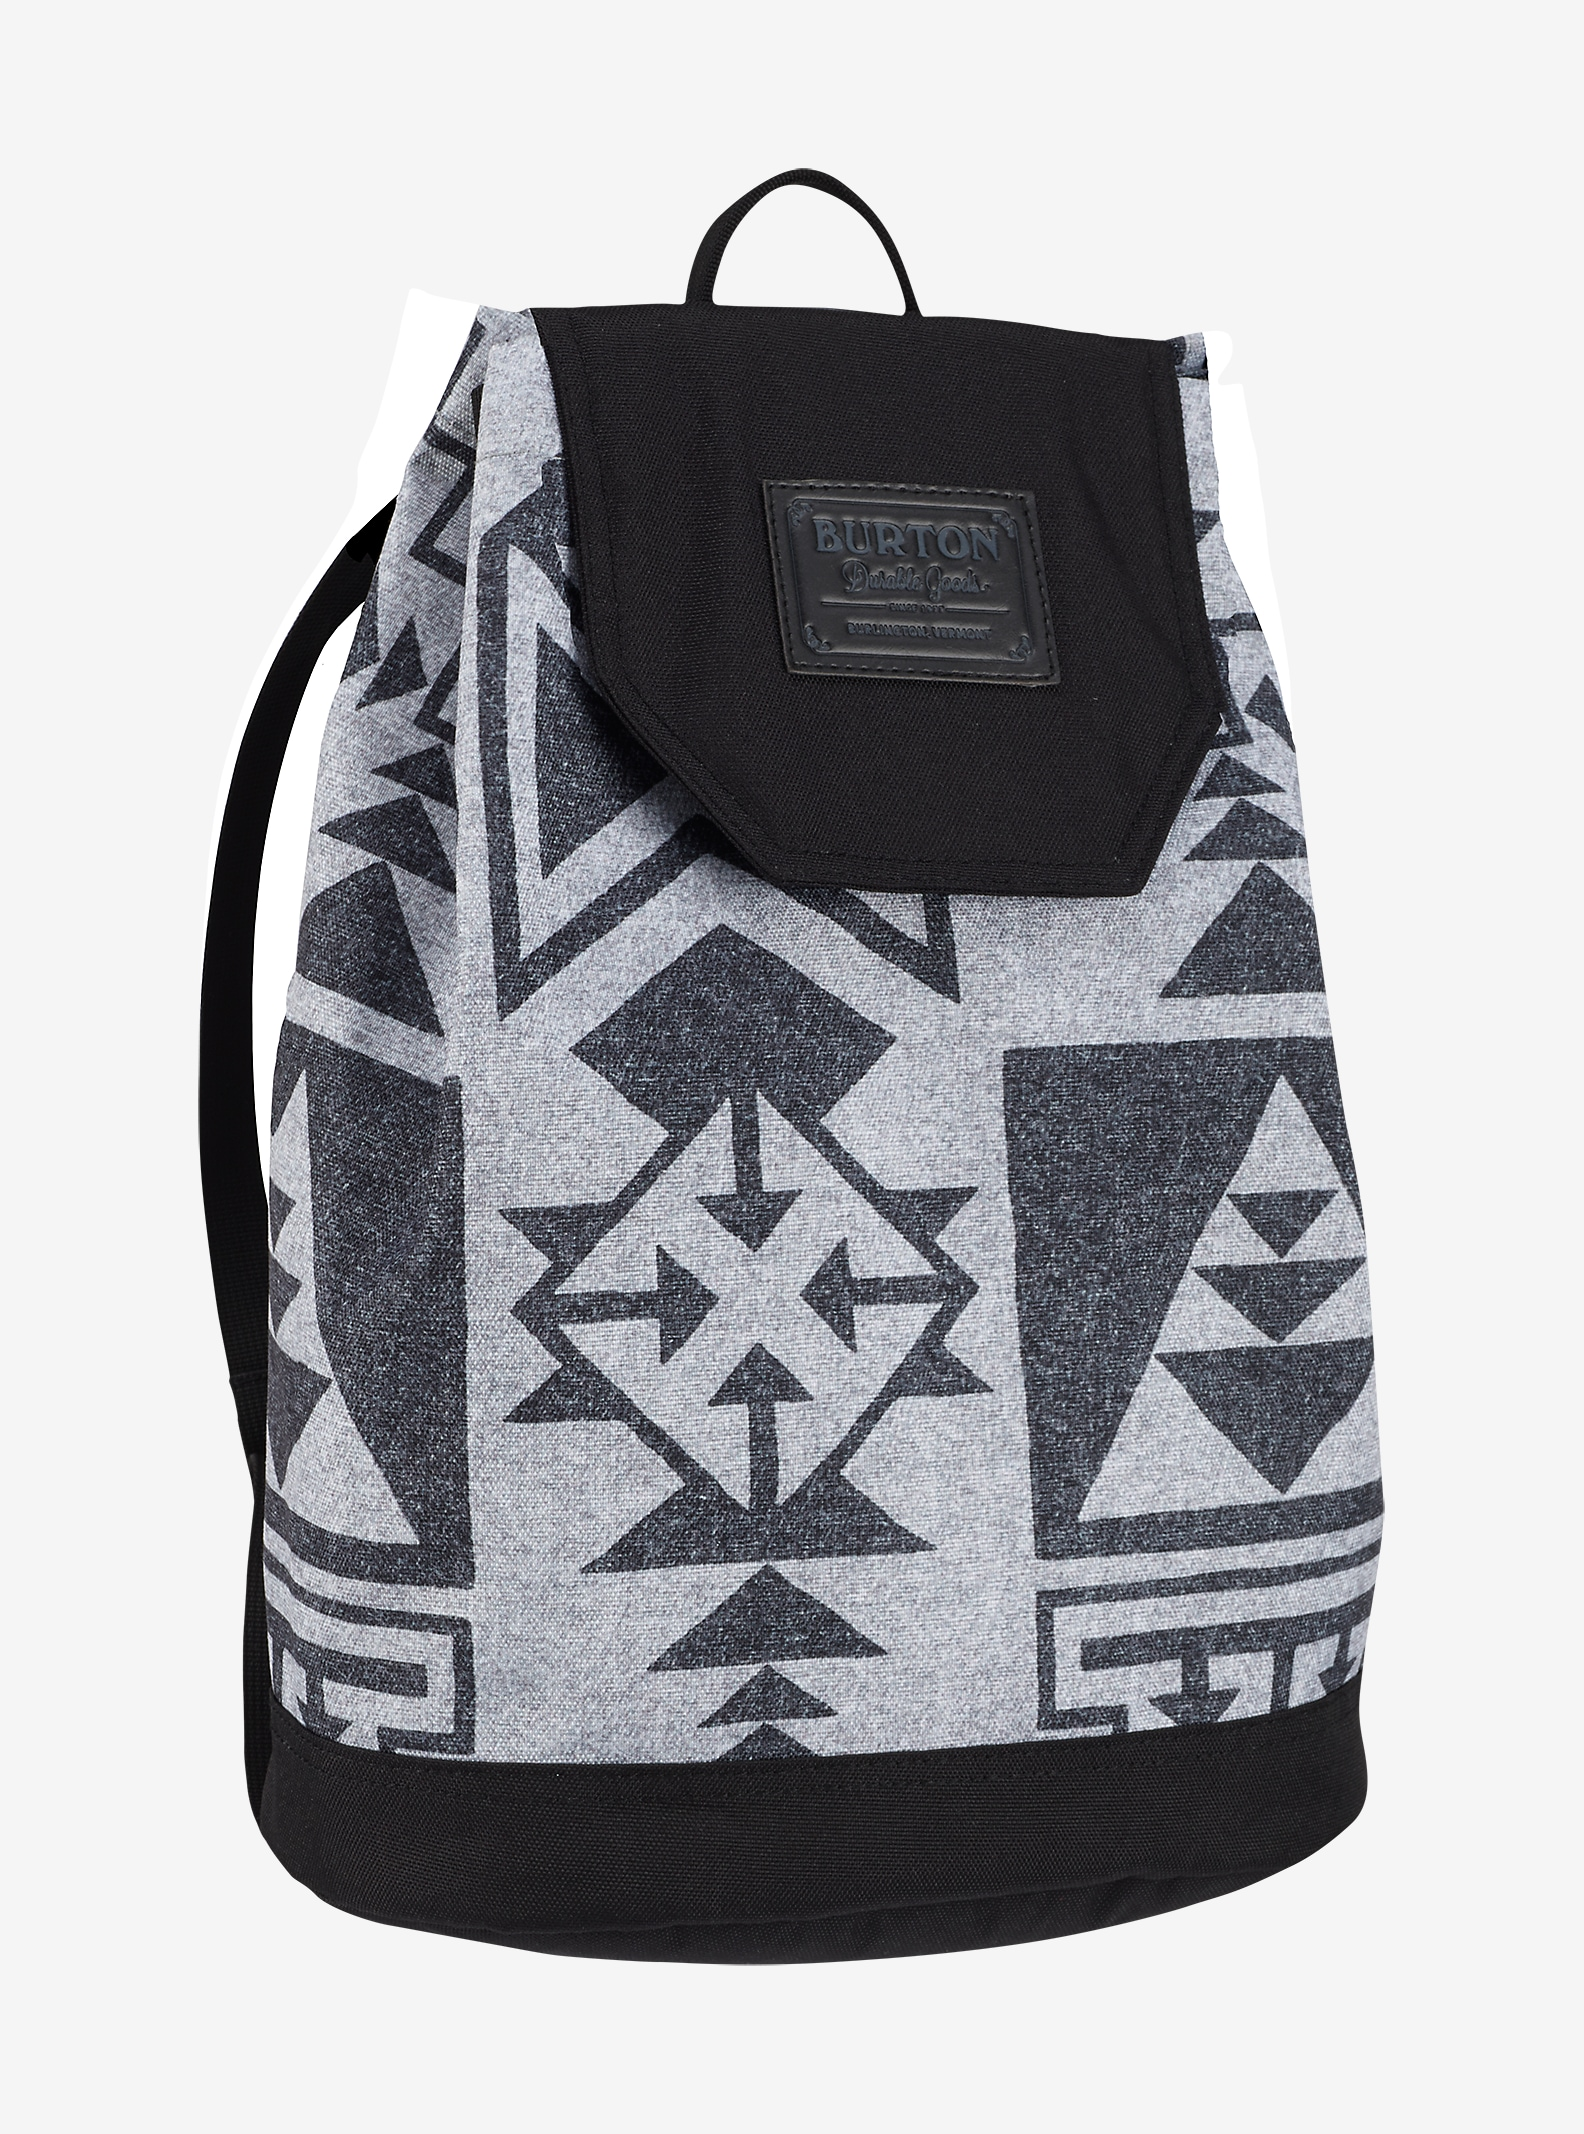 Burton Women's Parcel Backpack shown in Neu Nordic Print